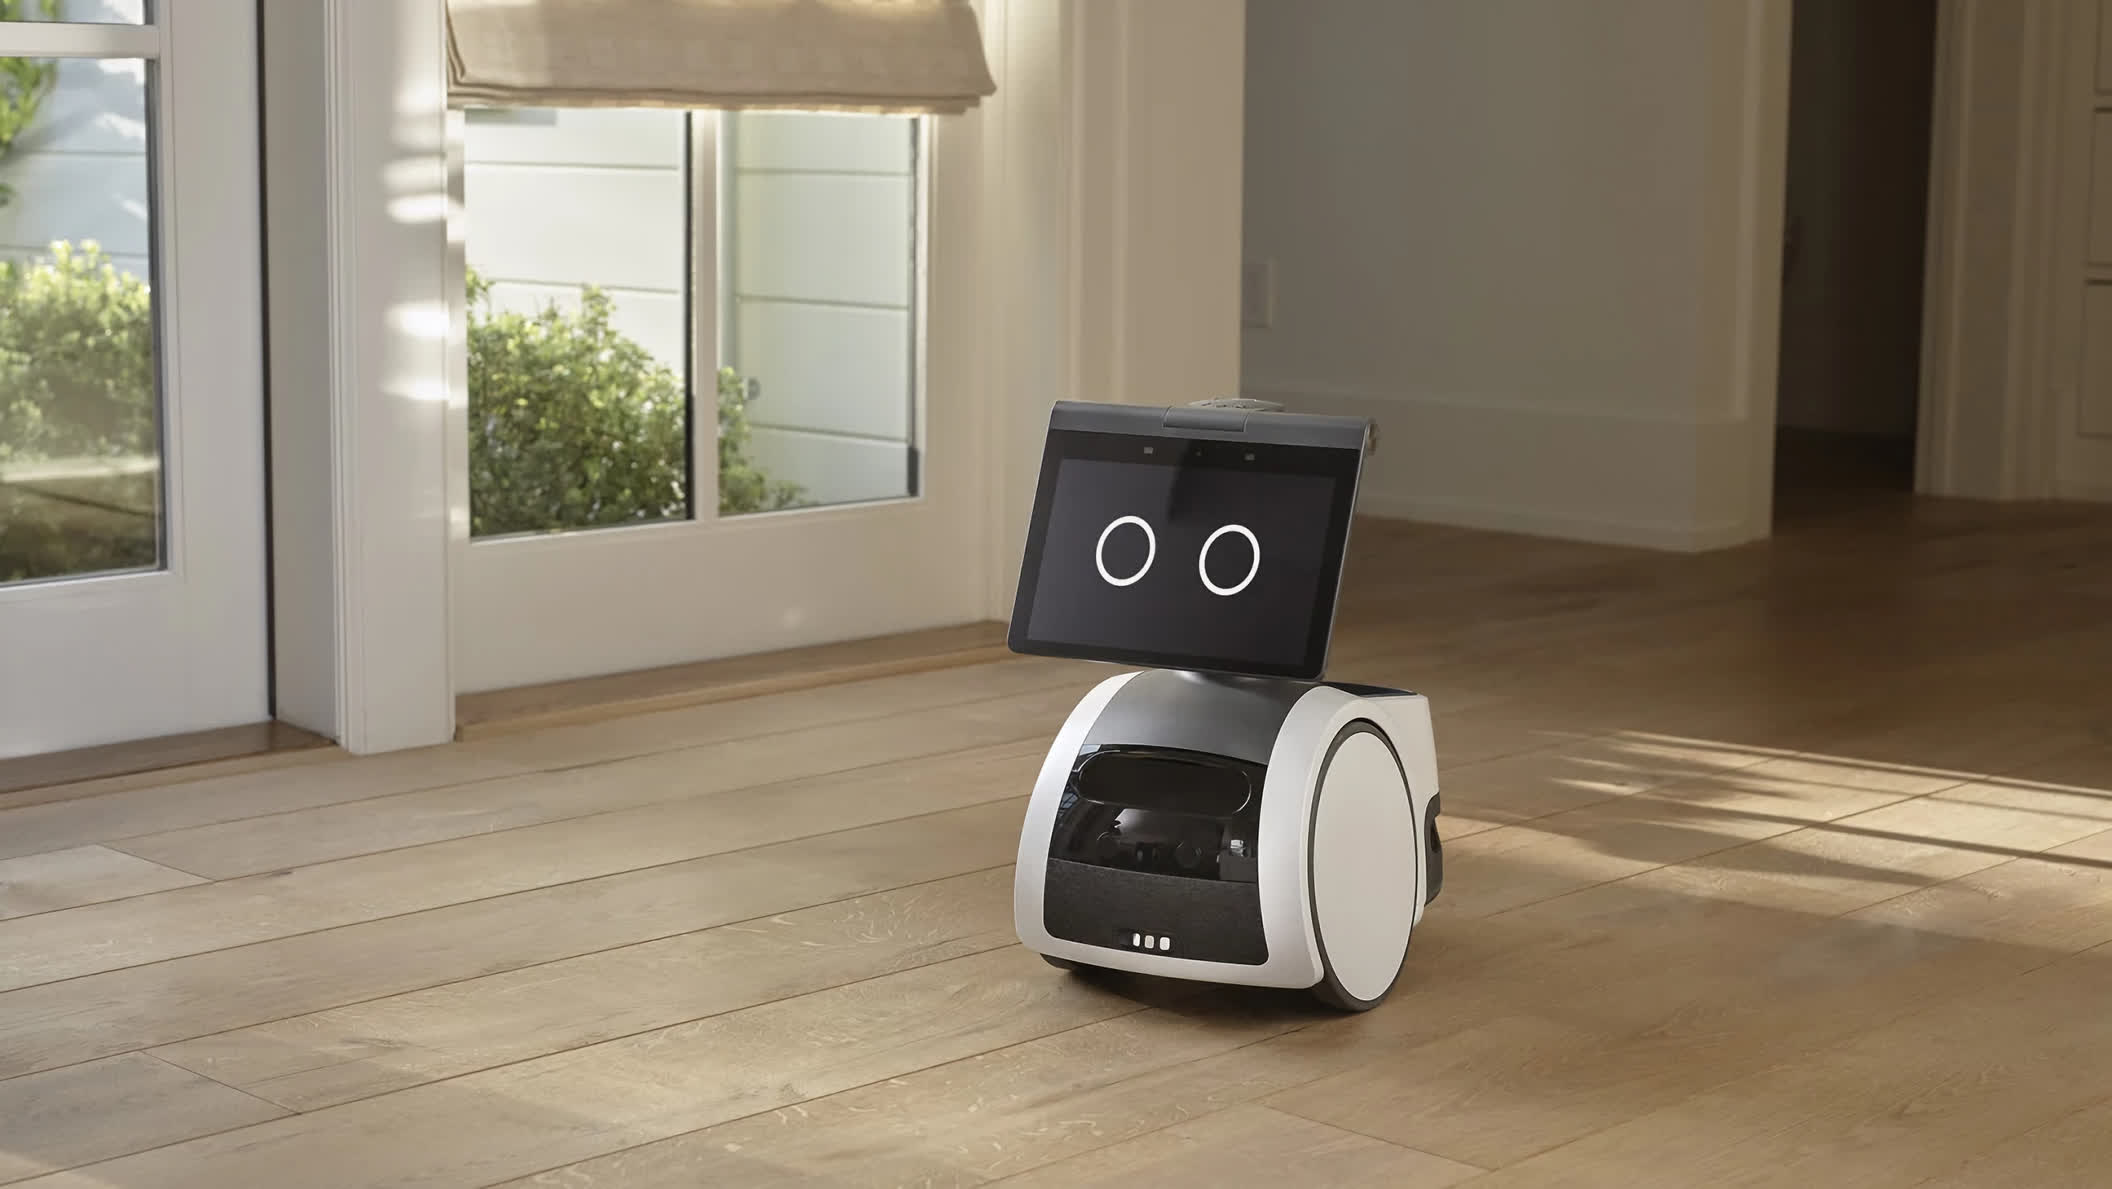 Amazon Astro developers claim the robot is a disaster that's not ready for release